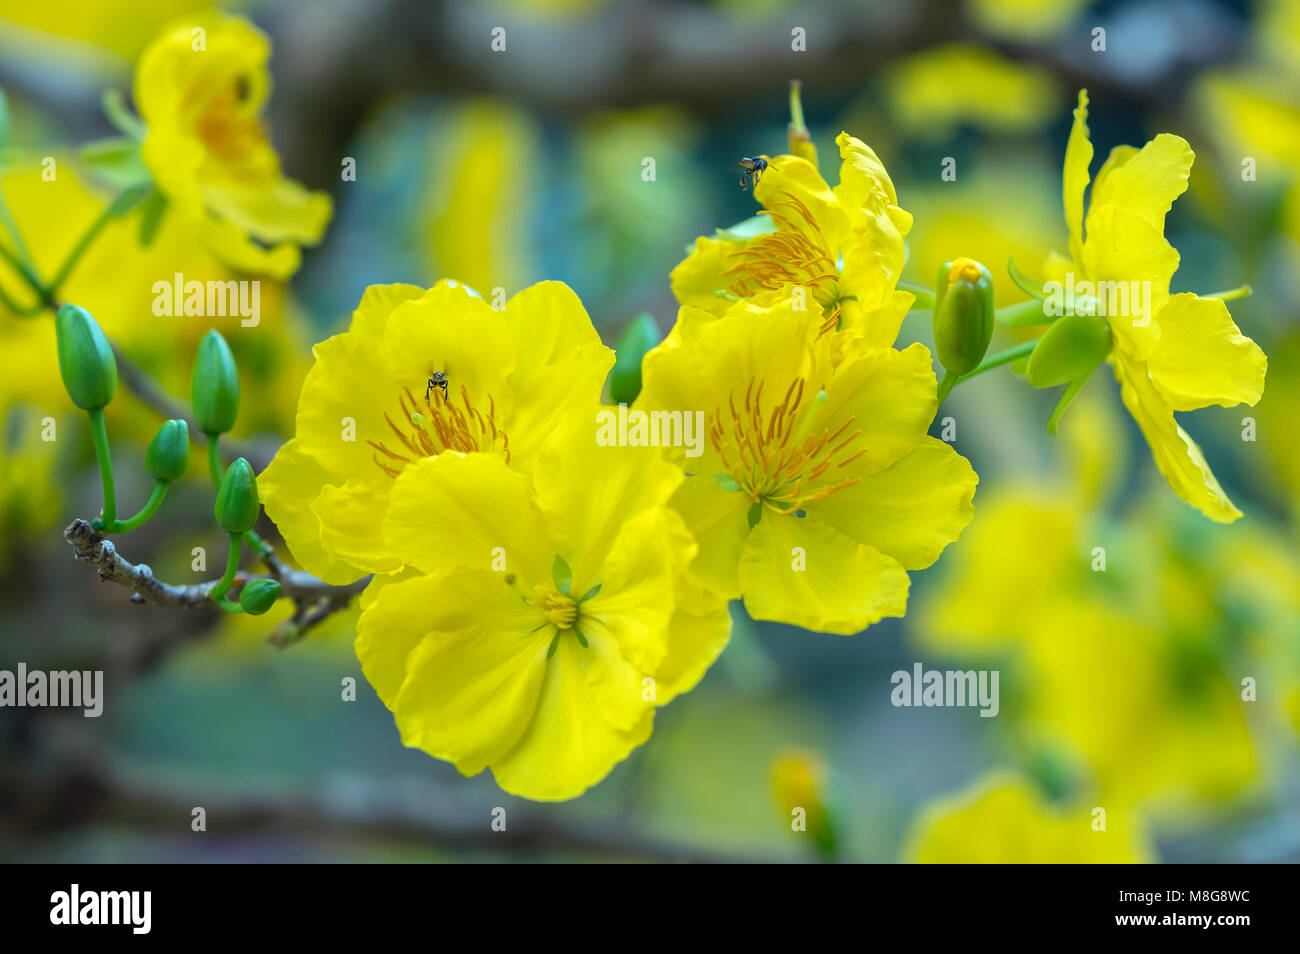 Apricot flowers blooming in vietnam lunar new year with yellow stock apricot flowers blooming in vietnam lunar new year with yellow blooming fragrant petals signaling spring has come this is the symbolic flower mightylinksfo